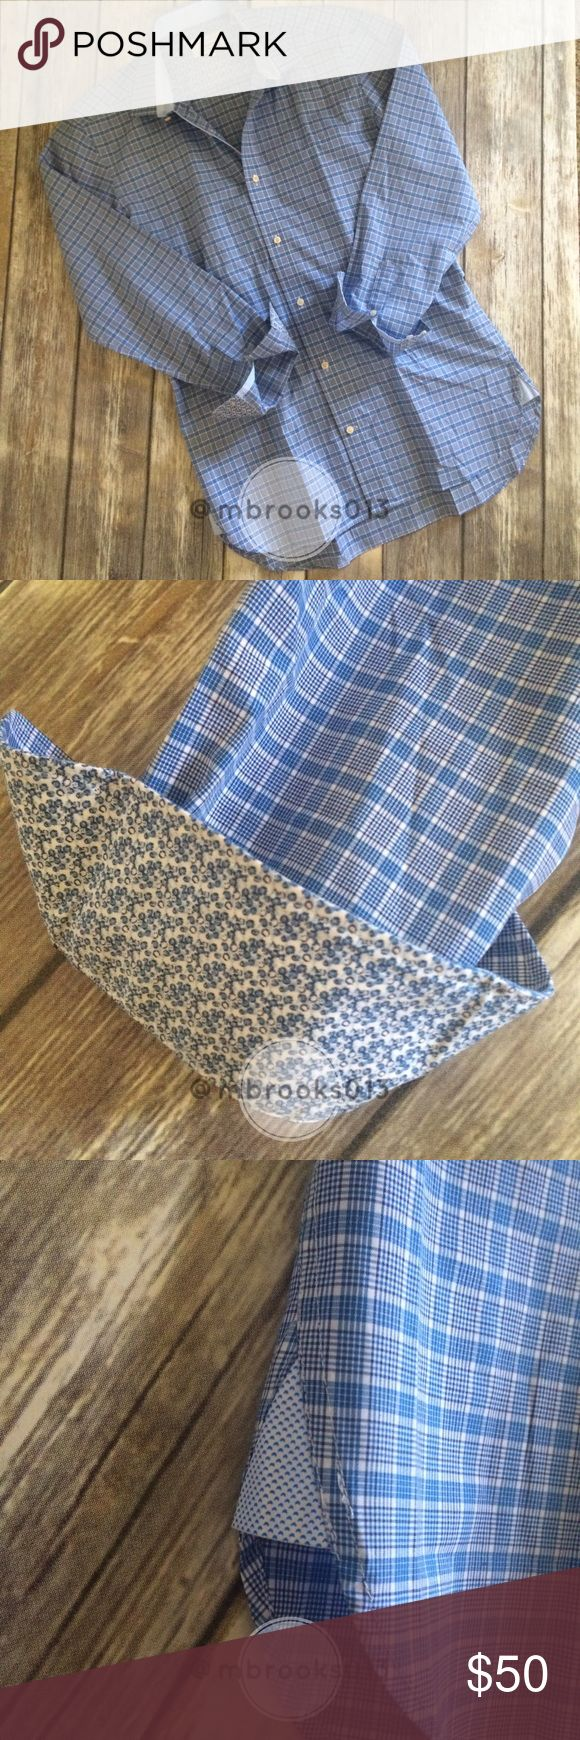 Men's Ted Baker Classic fit, Endurance Collection Men's Ted Baker Classic fit button up dress shirt, Endurance Collection. Size 15. Super fun details and in like new condition! Ted Baker Shirts Dress Shirts